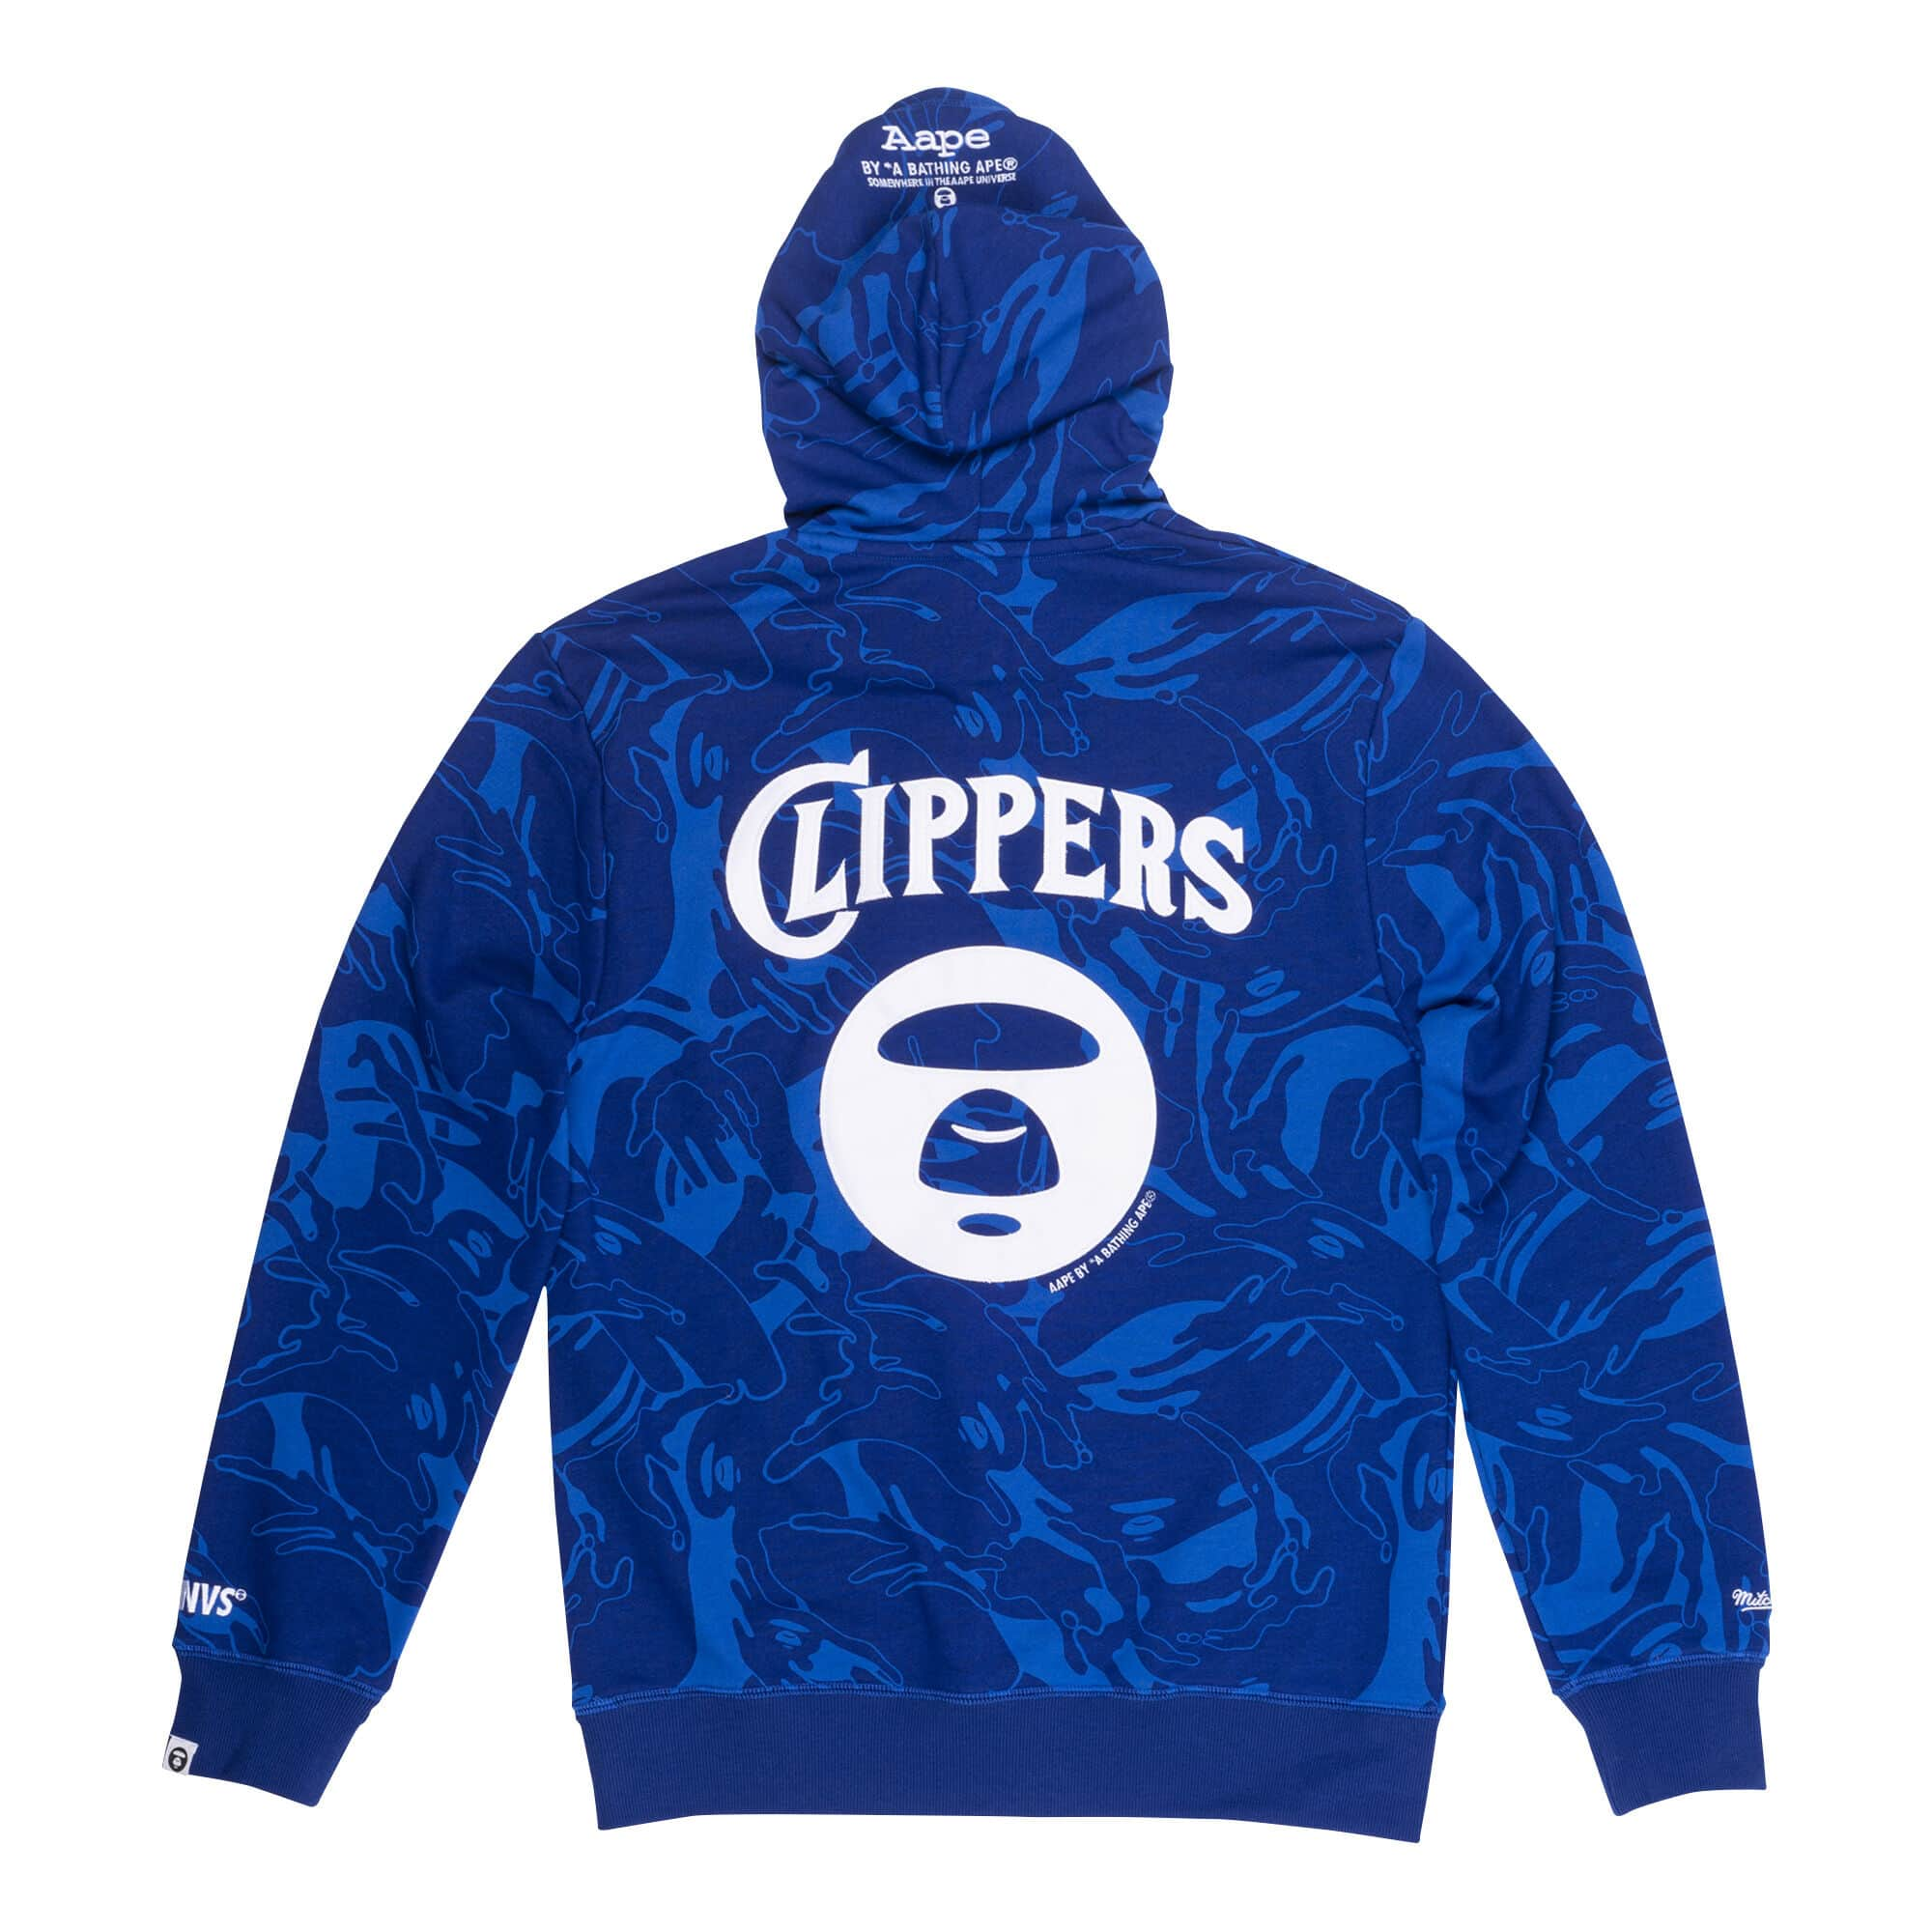 Aape x Mitchell Ness San Diego Clippers Hoodie Navy 1